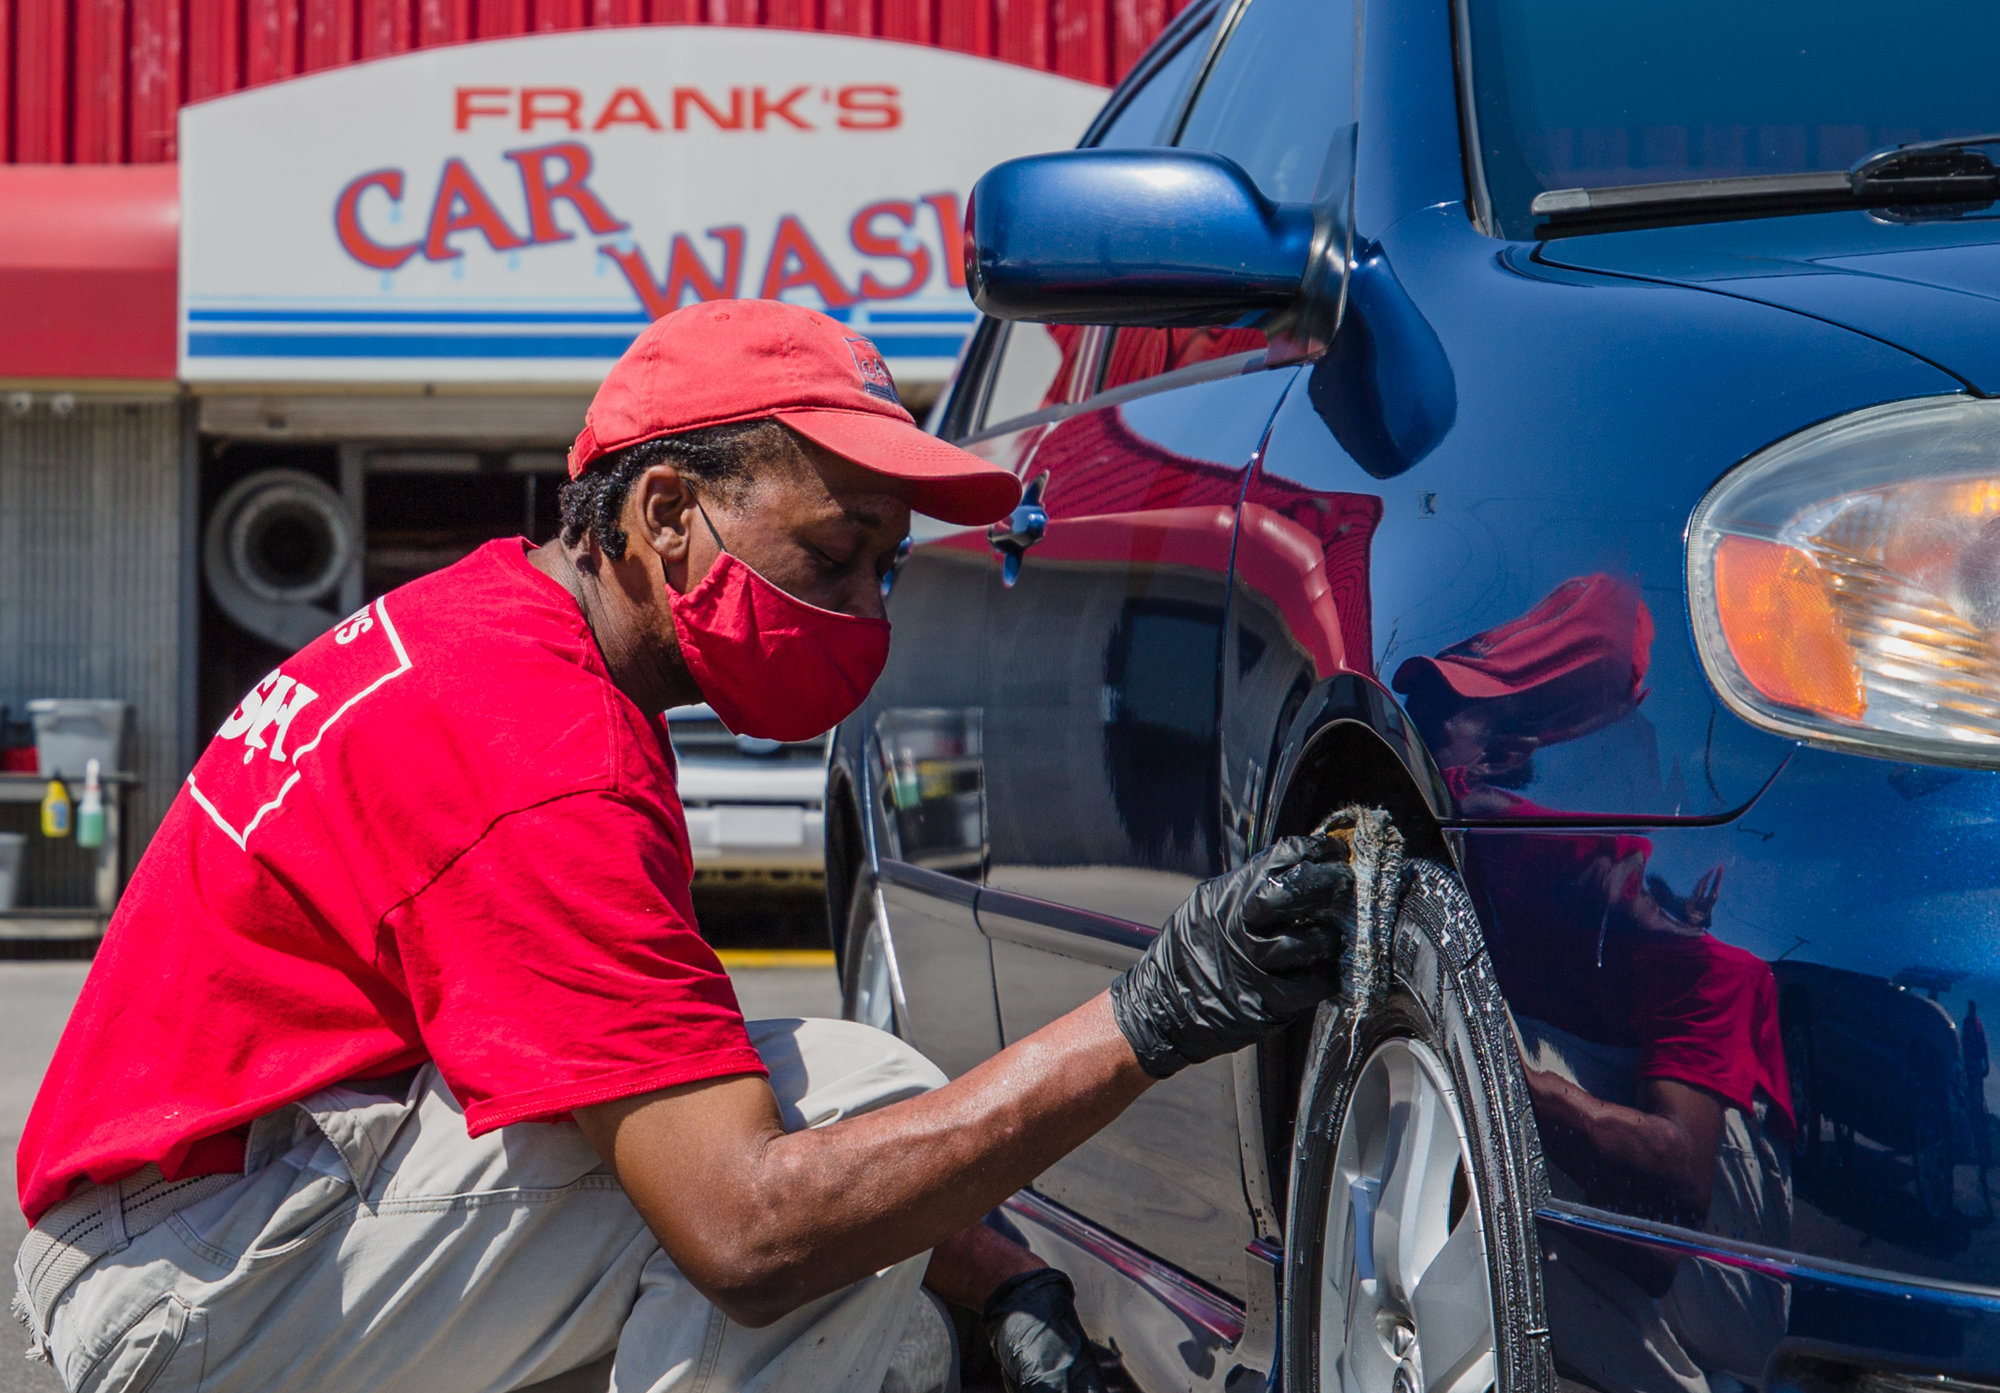 As business reopen and try to maintain safety, Eric Holland shines the tires of a car at Frank's Car Wash on Broad Street in Sumter on May 6. Holland has worked at at the car wash for four years.